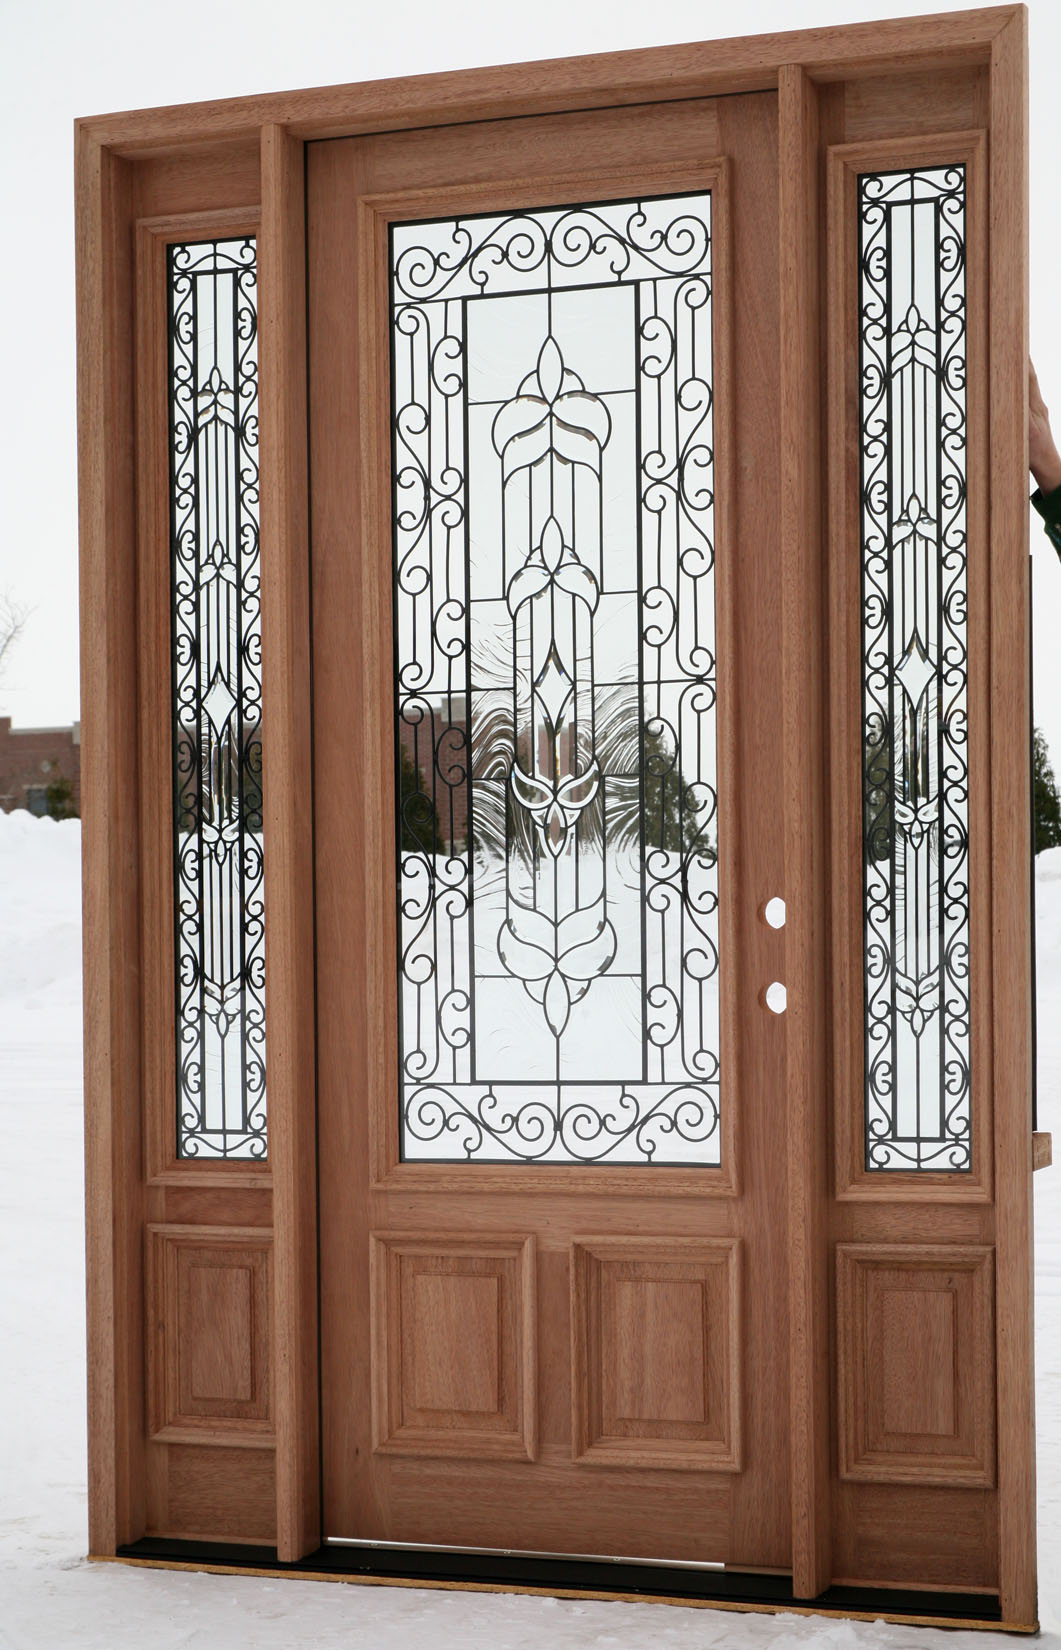 1650 #704733 Compare And Buy Here! We Ship Doors Anywhere In The USA Canada And  save image Full Glass Front Doors 40271061